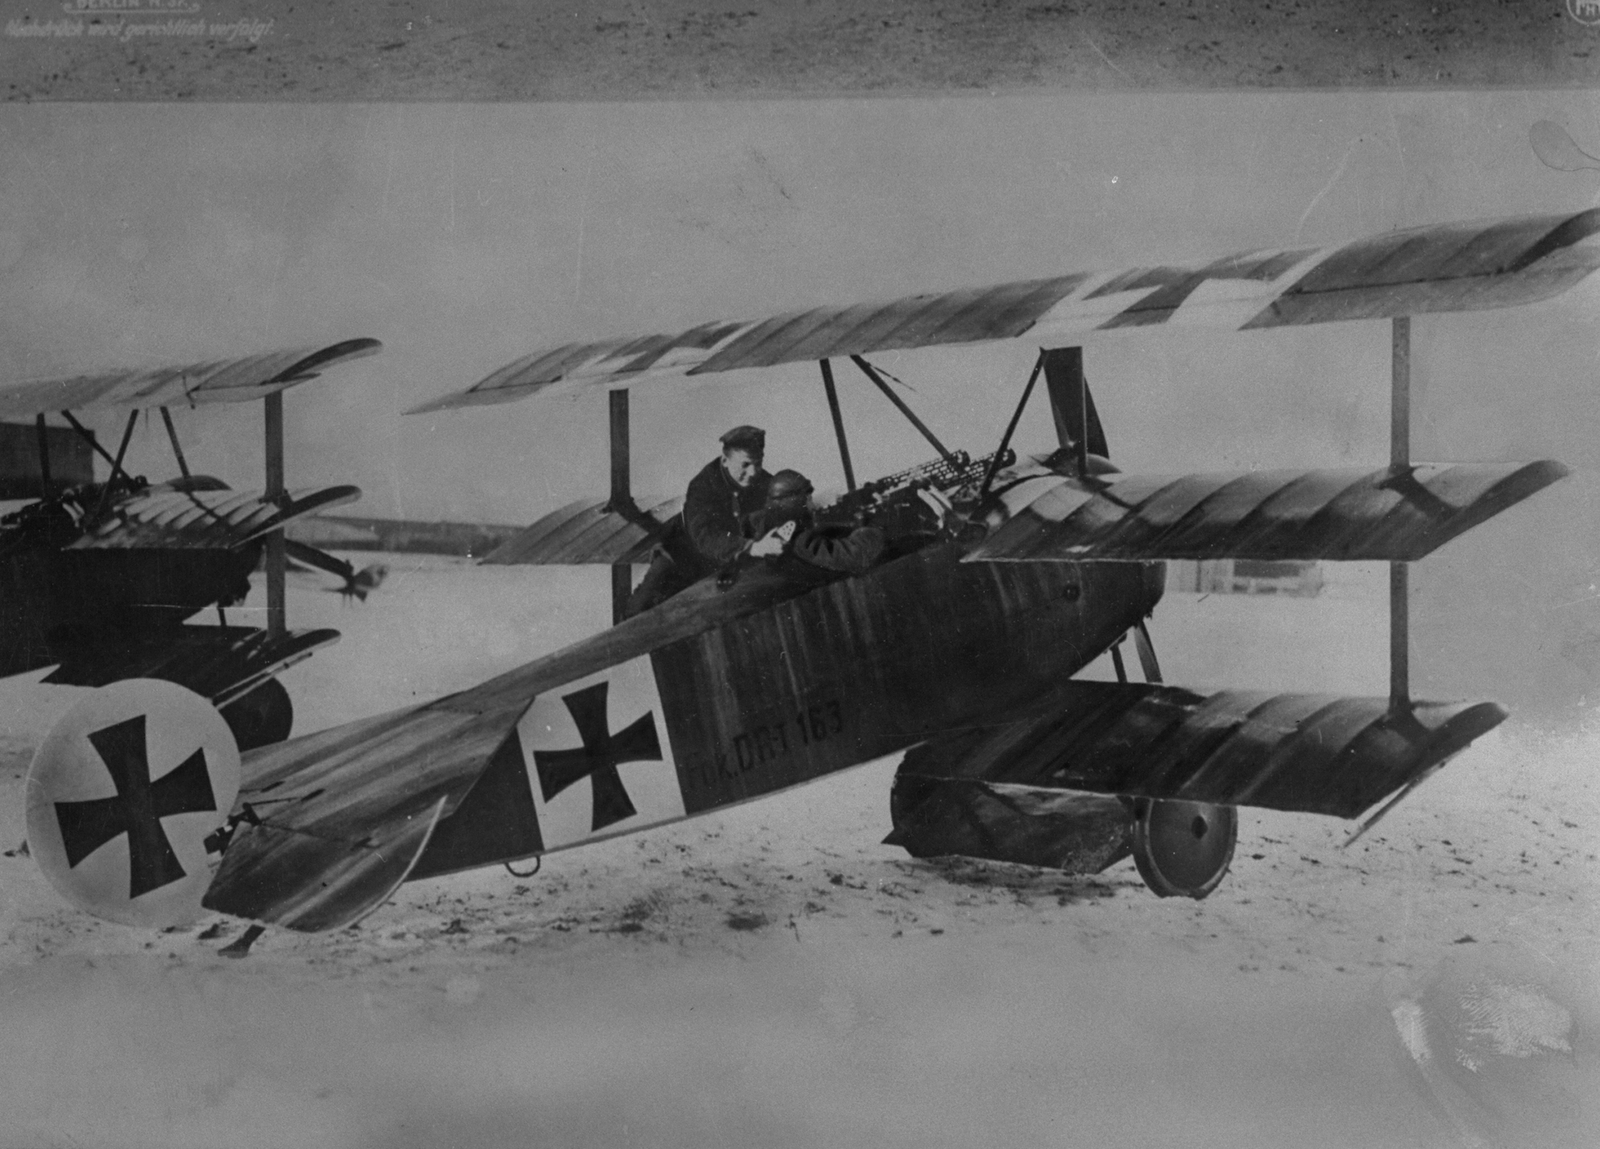 Remembering the Red Baron on the 100th Anniversary of His Death